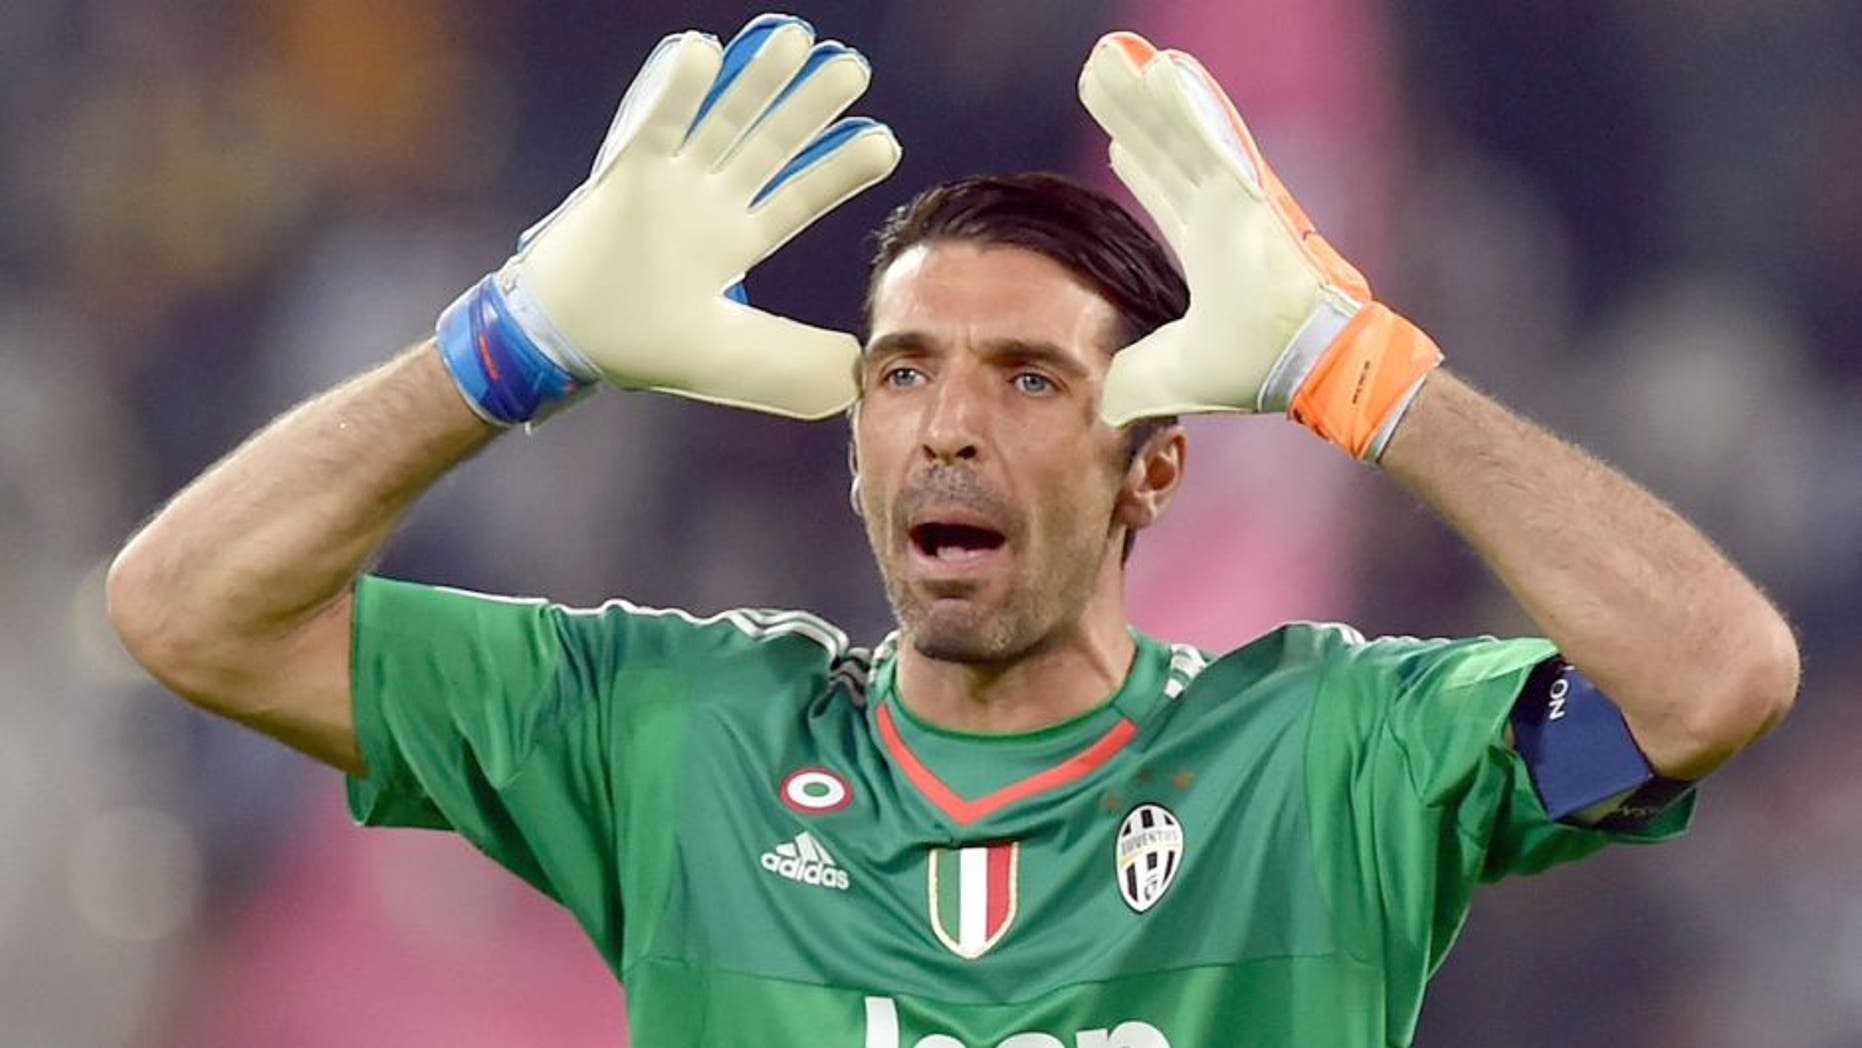 TURIN, ITALY - SEPTEMBER 30: Gianluigi Buffon of Juventus reacts during the UEFA Champions League group E match between Juventus and Sevilla FC on September 30, 2015 in Turin, Italy. (Photo by Valerio Pennicino/Getty Images)